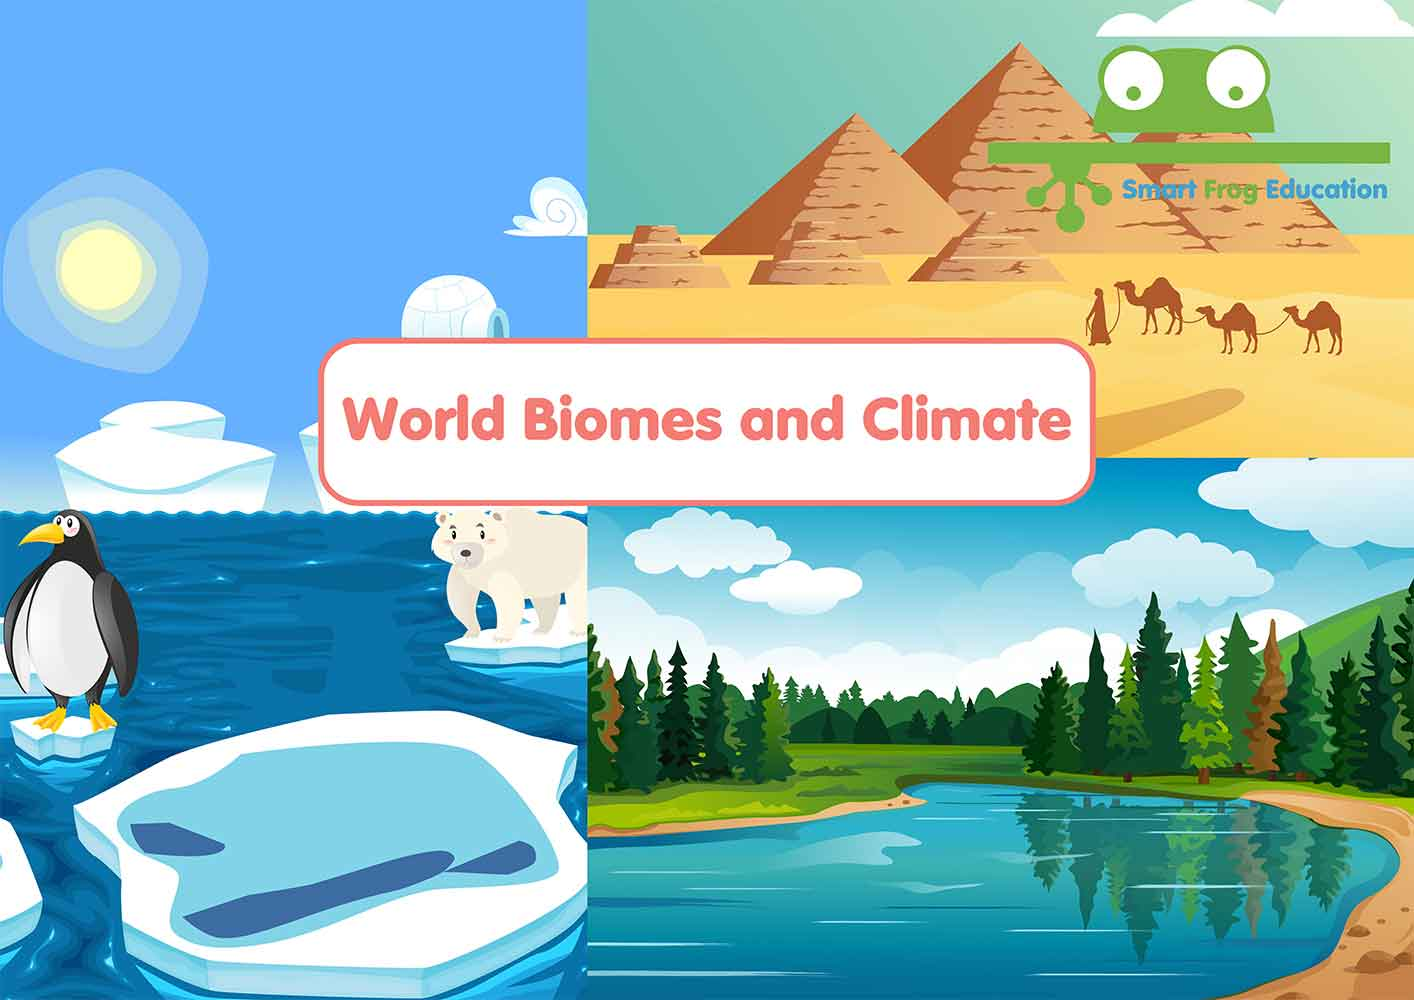 World biomes and climate smart frog the teaching about the different biomes and climates that make our planet what it is today complete with engaging and dynamic maps go interactive gumiabroncs Images